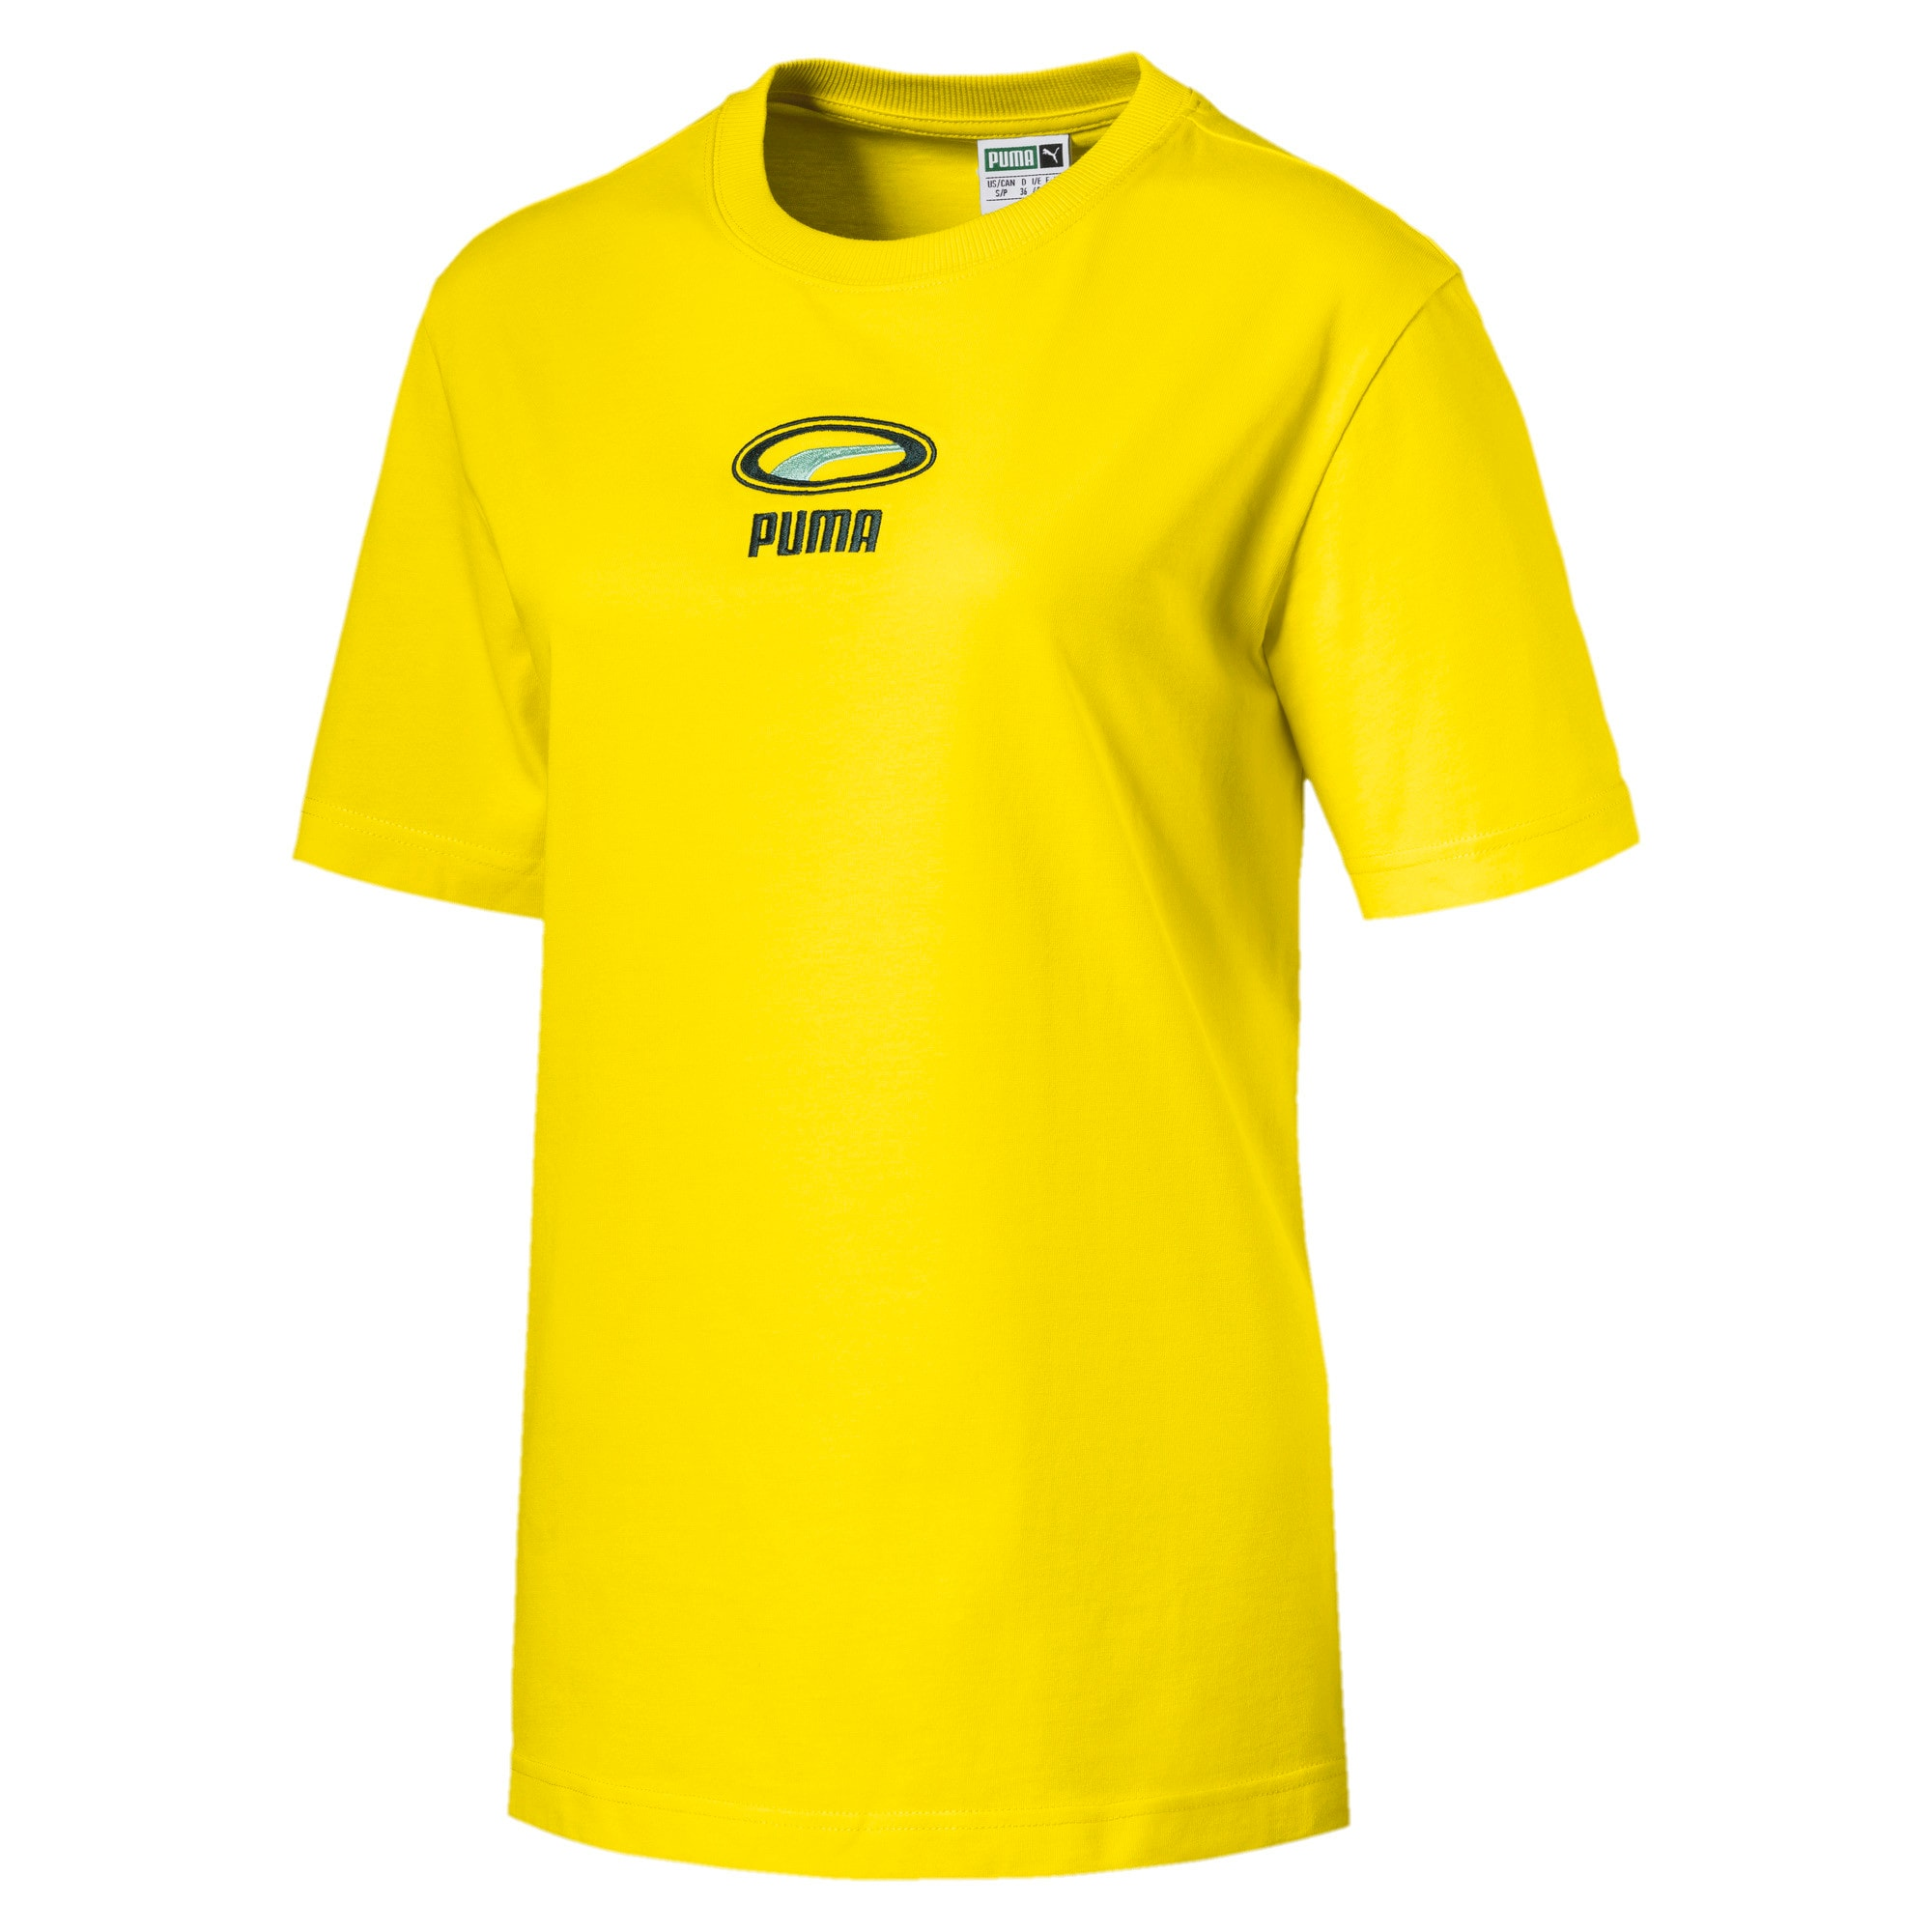 Thumbnail 1 of OG Women's Tee, Blazing Yellow, medium